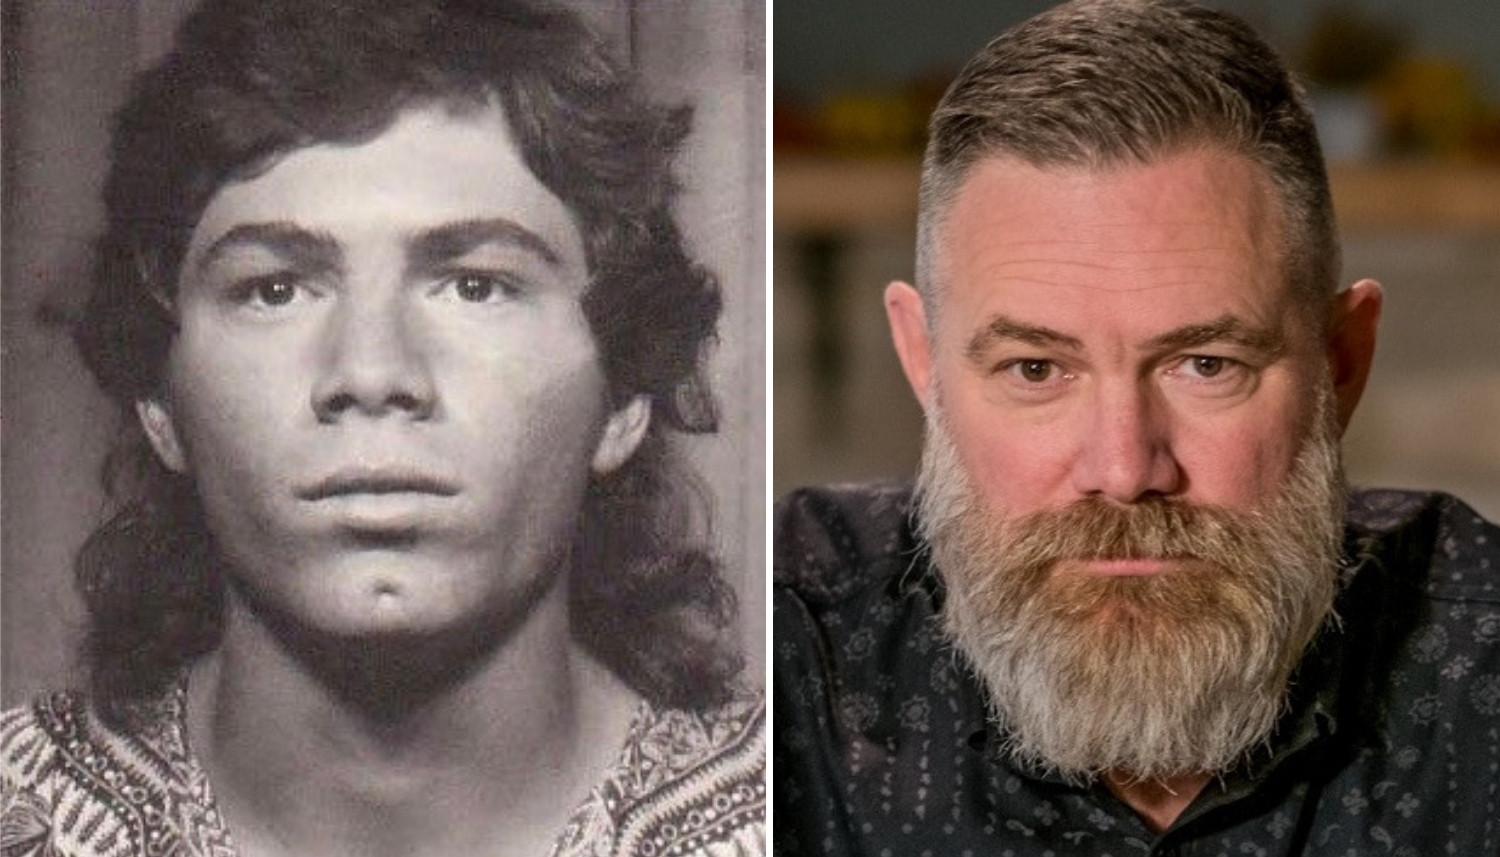 From left, Peter Hamer's 1986 yearbook photo, and Hamer in 2018. (Michel Aspirot/CBC)